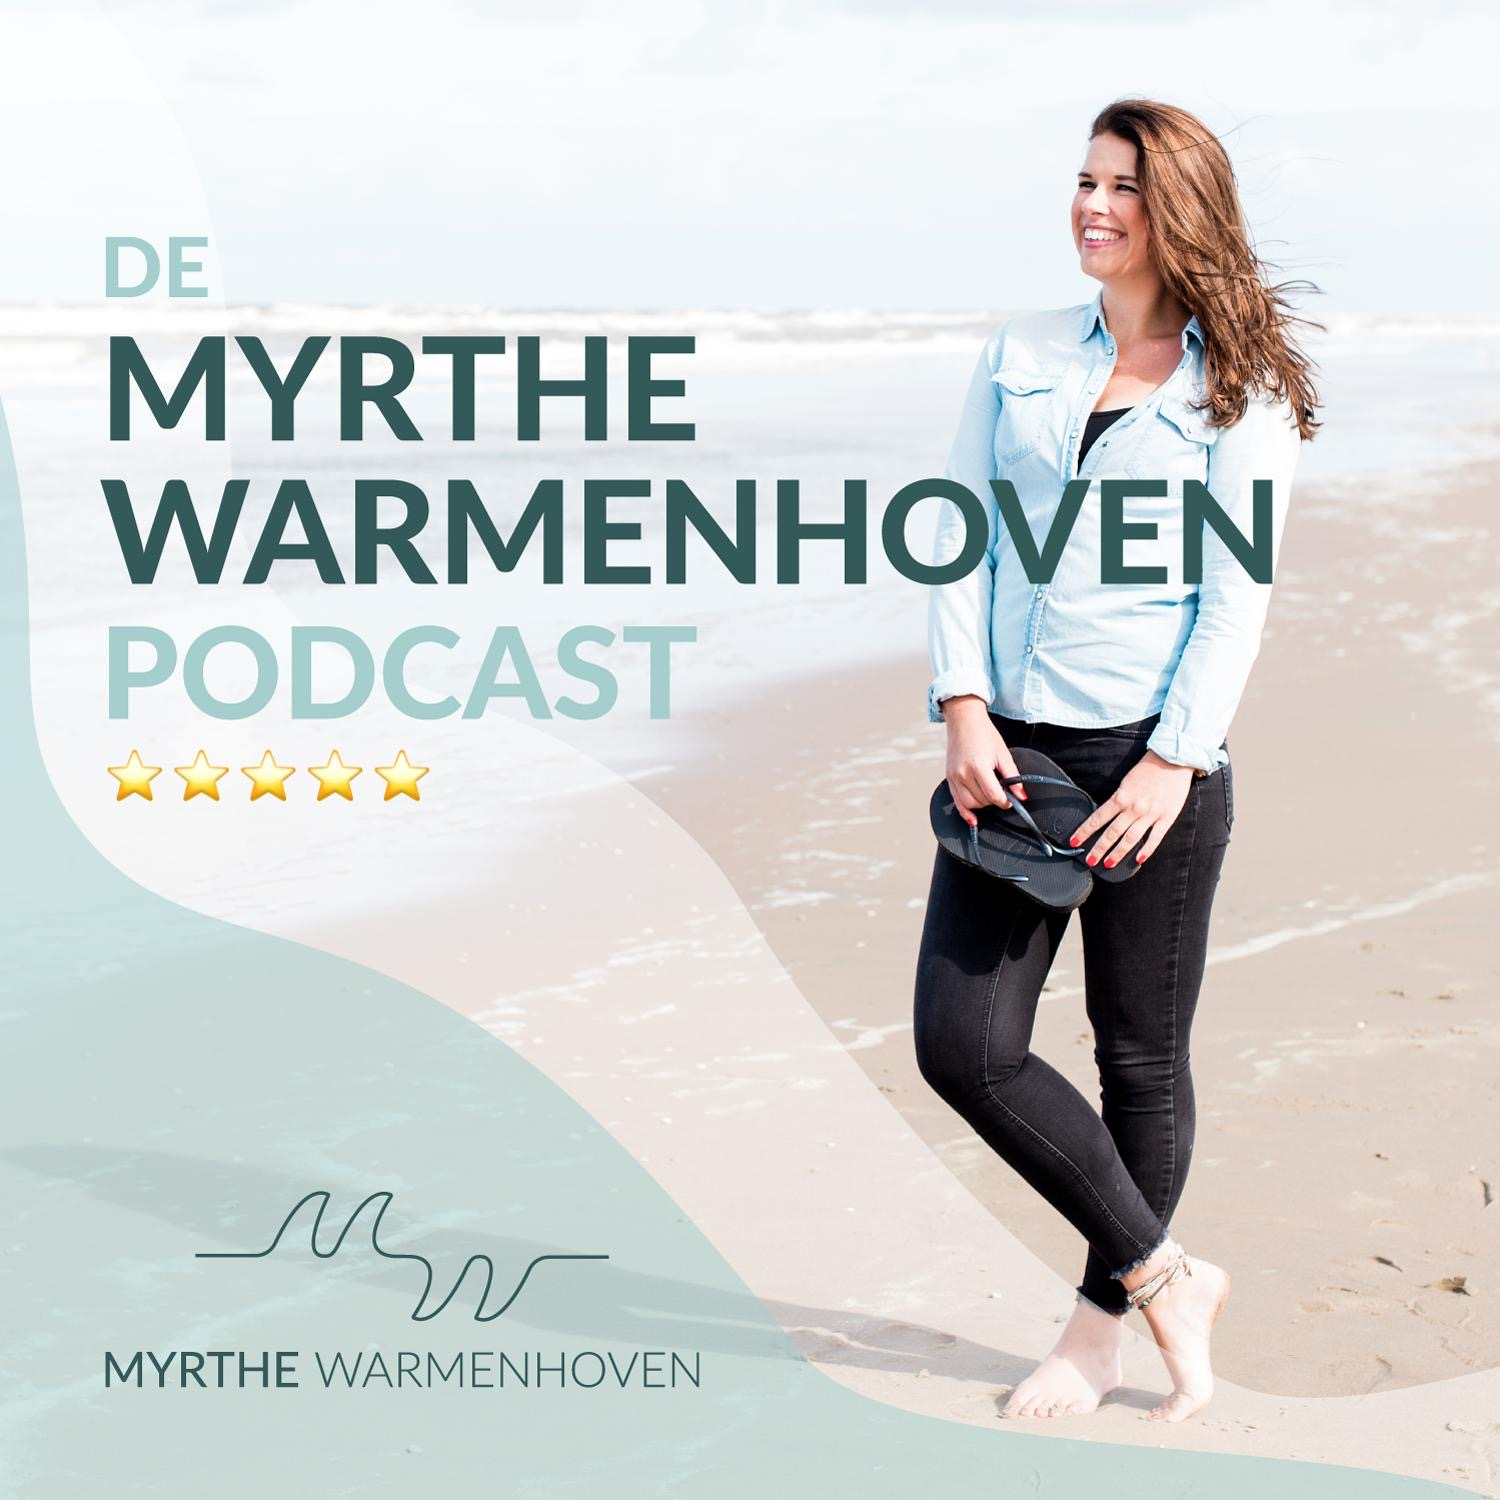 Myrthe Warmenhoven podcast cover